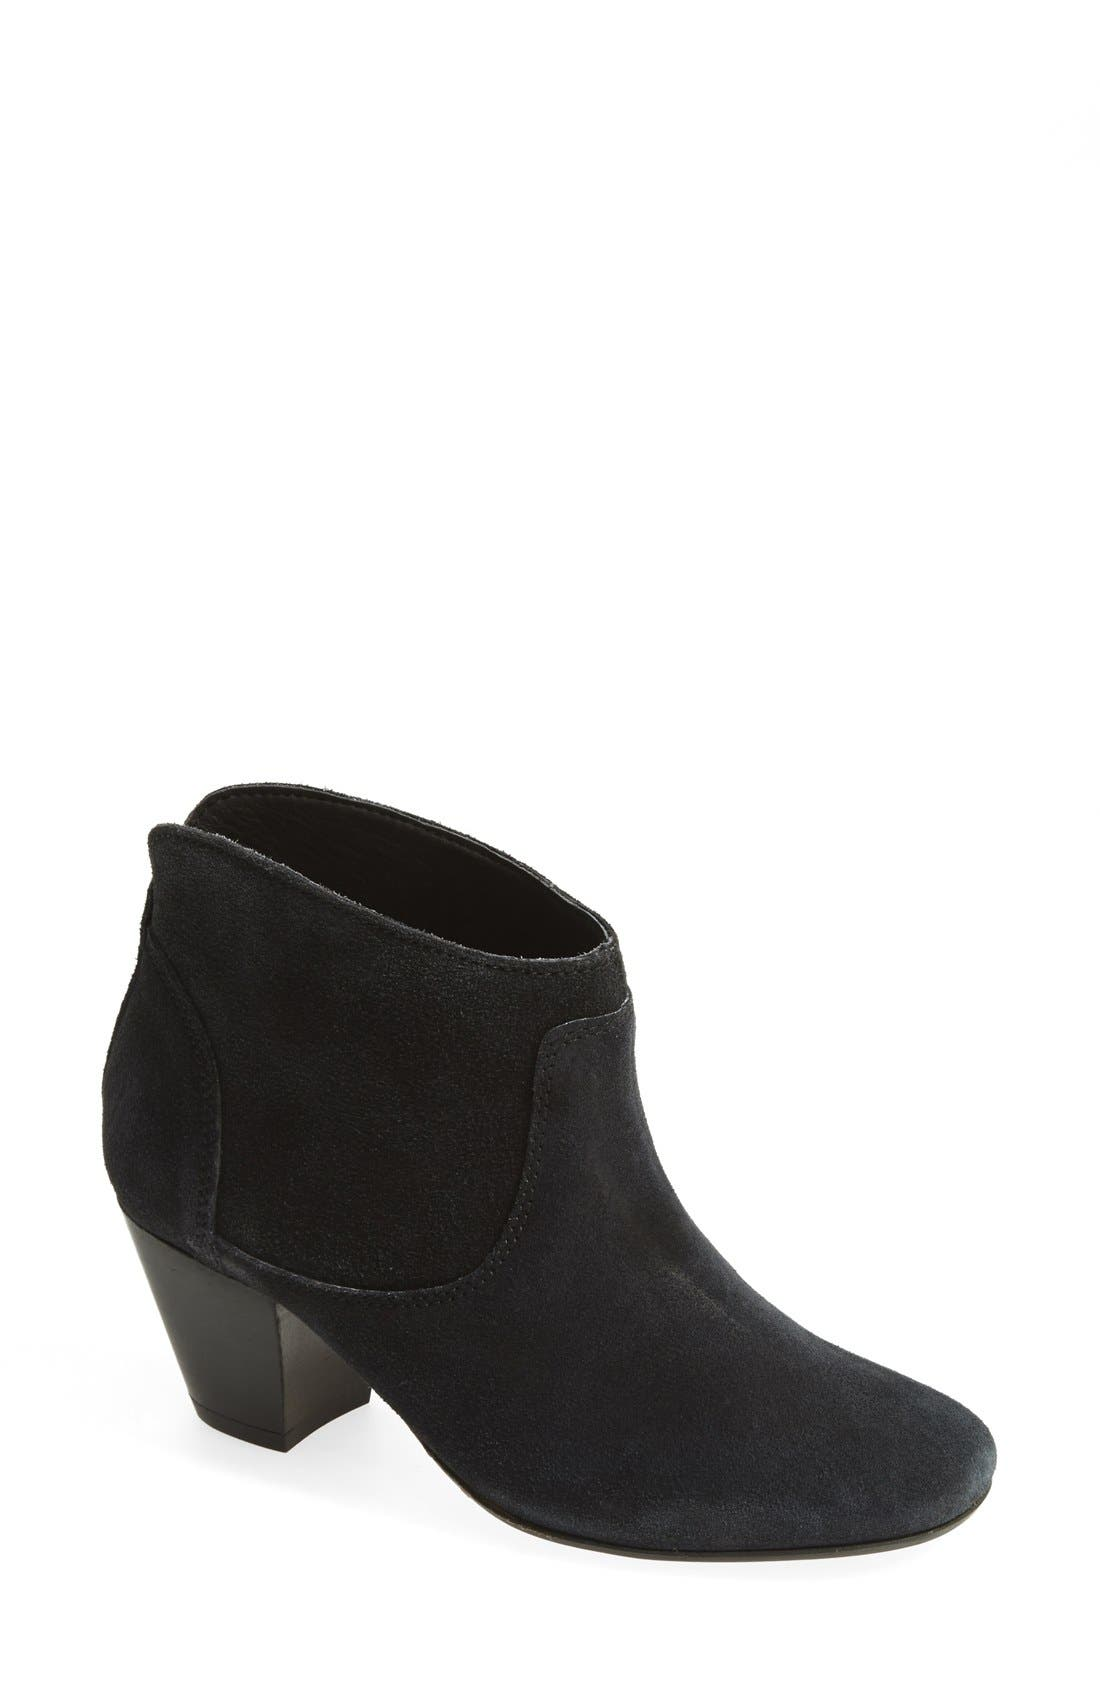 H BY HUDSON 'Kiver' Suede Bootie, Main, color, 001